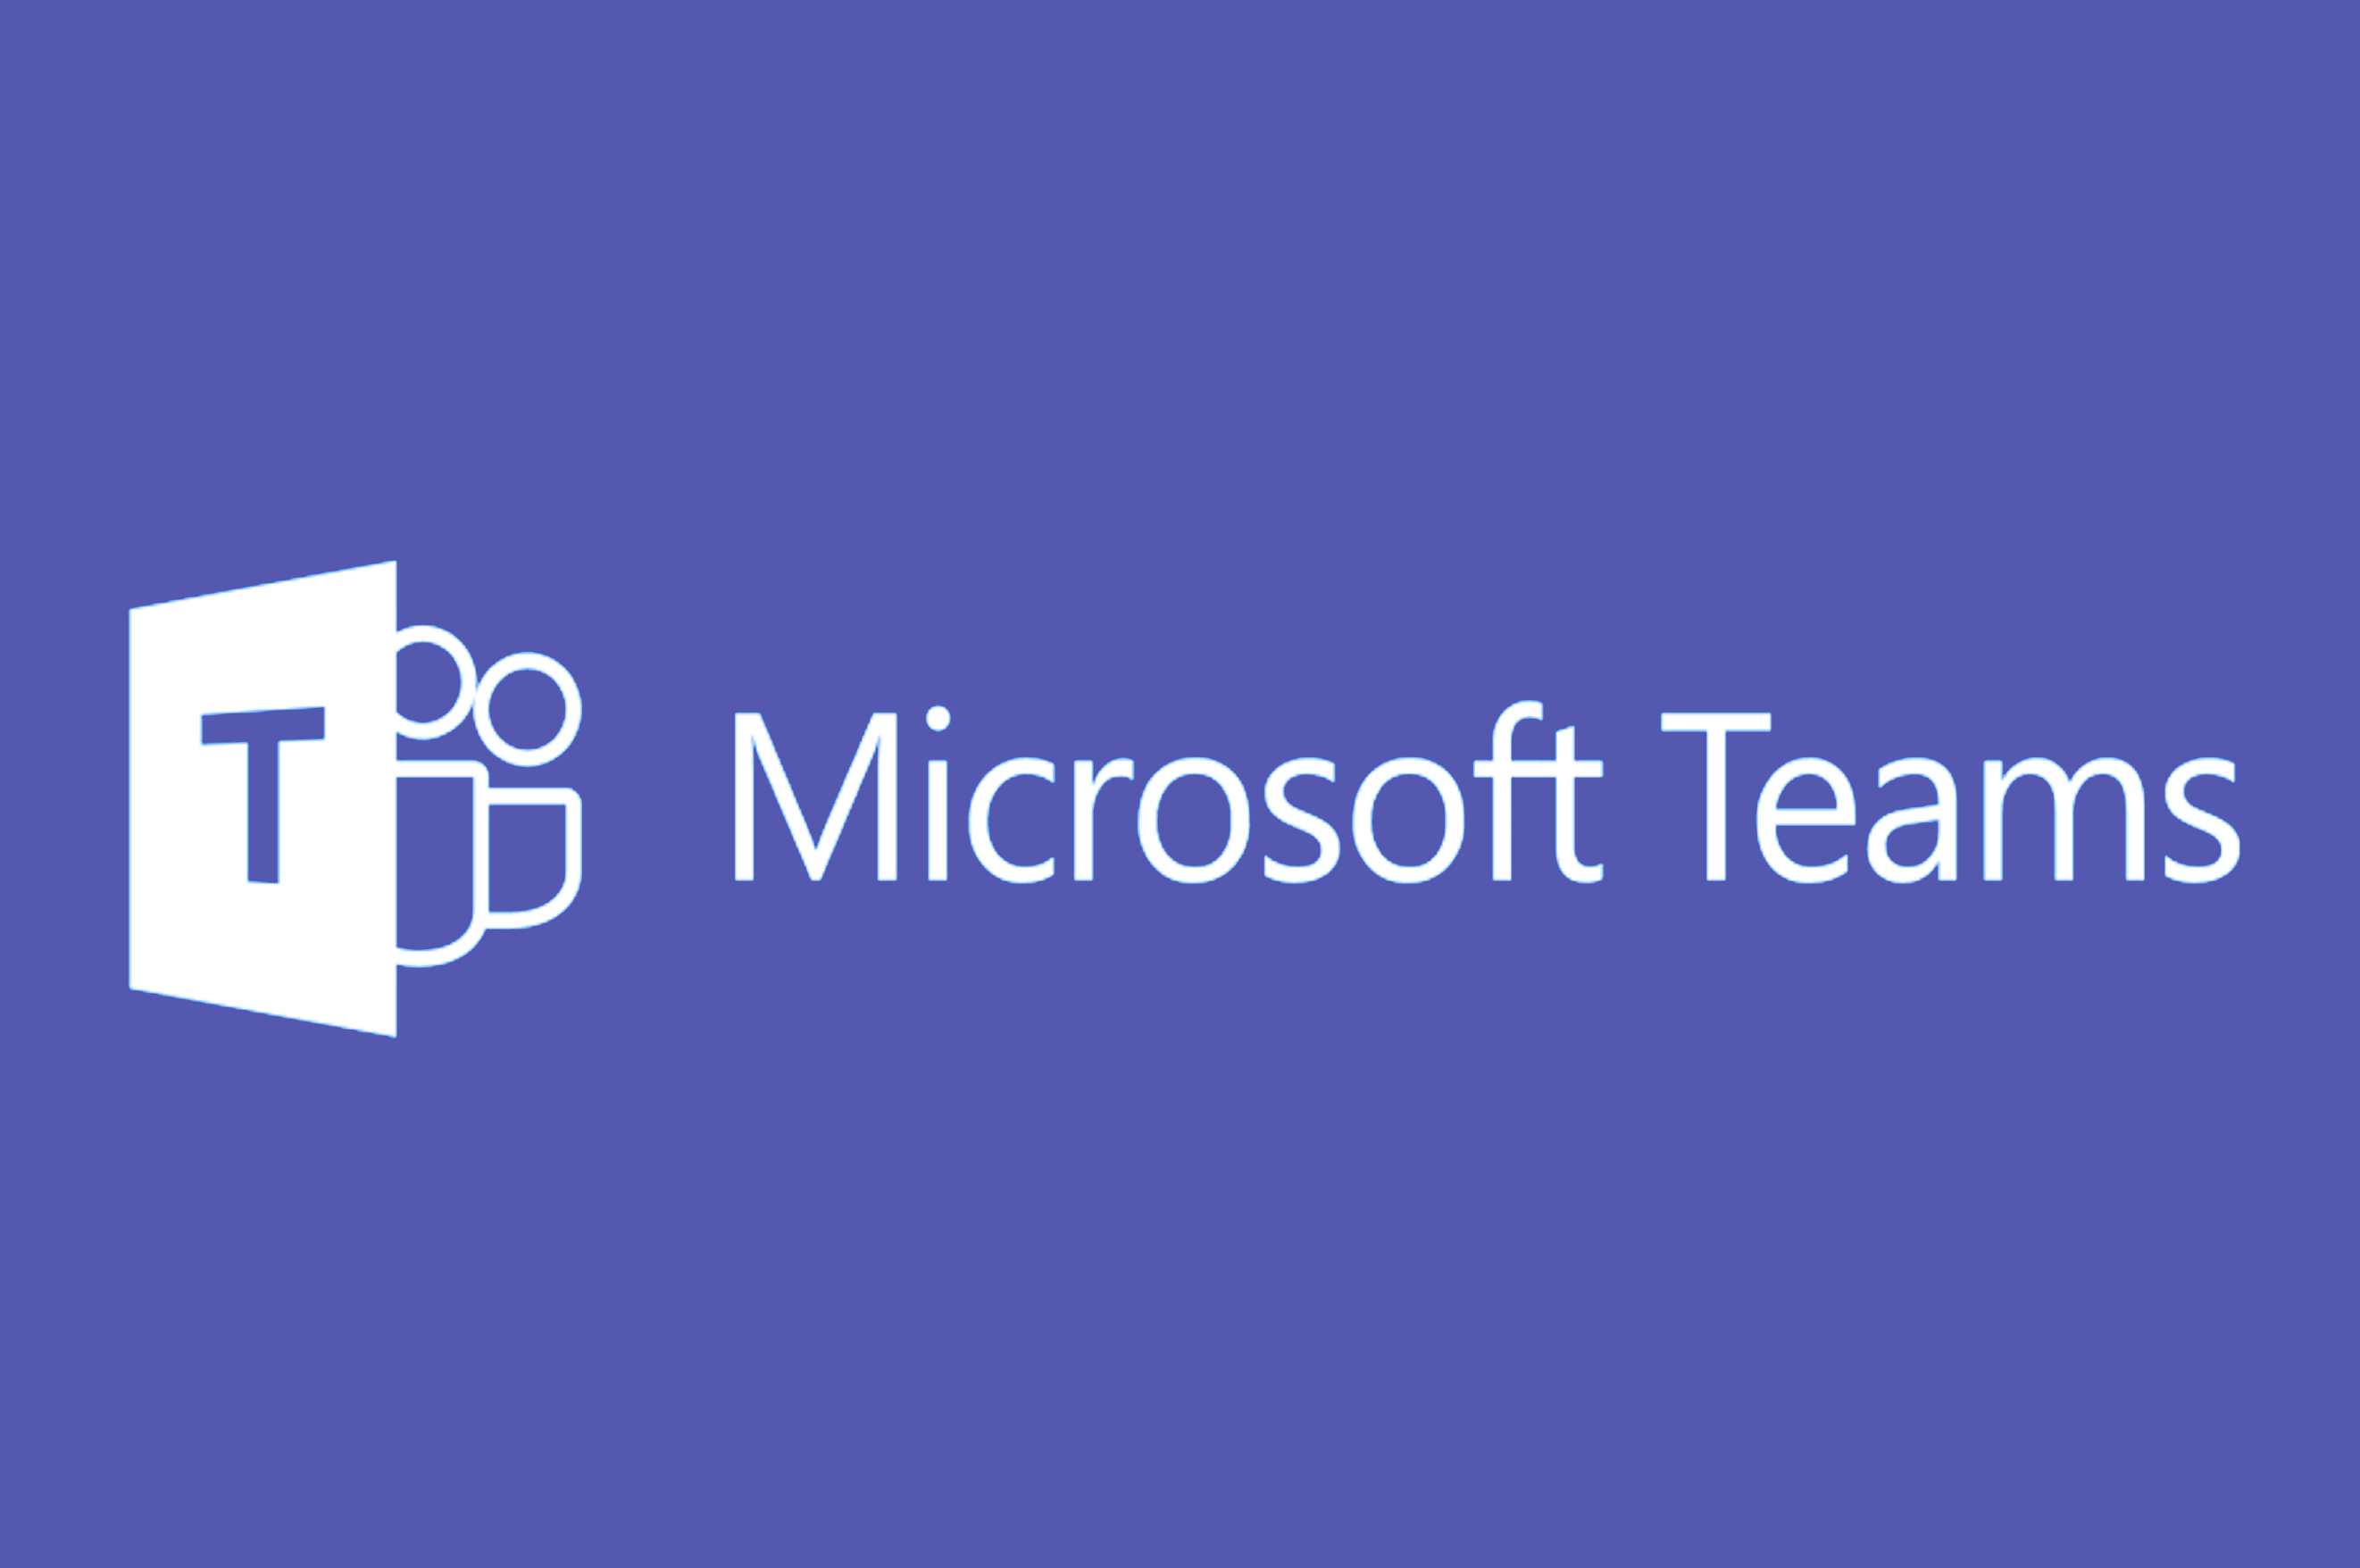 Microsoft Teams is Now Free  Here's Why That's Great News